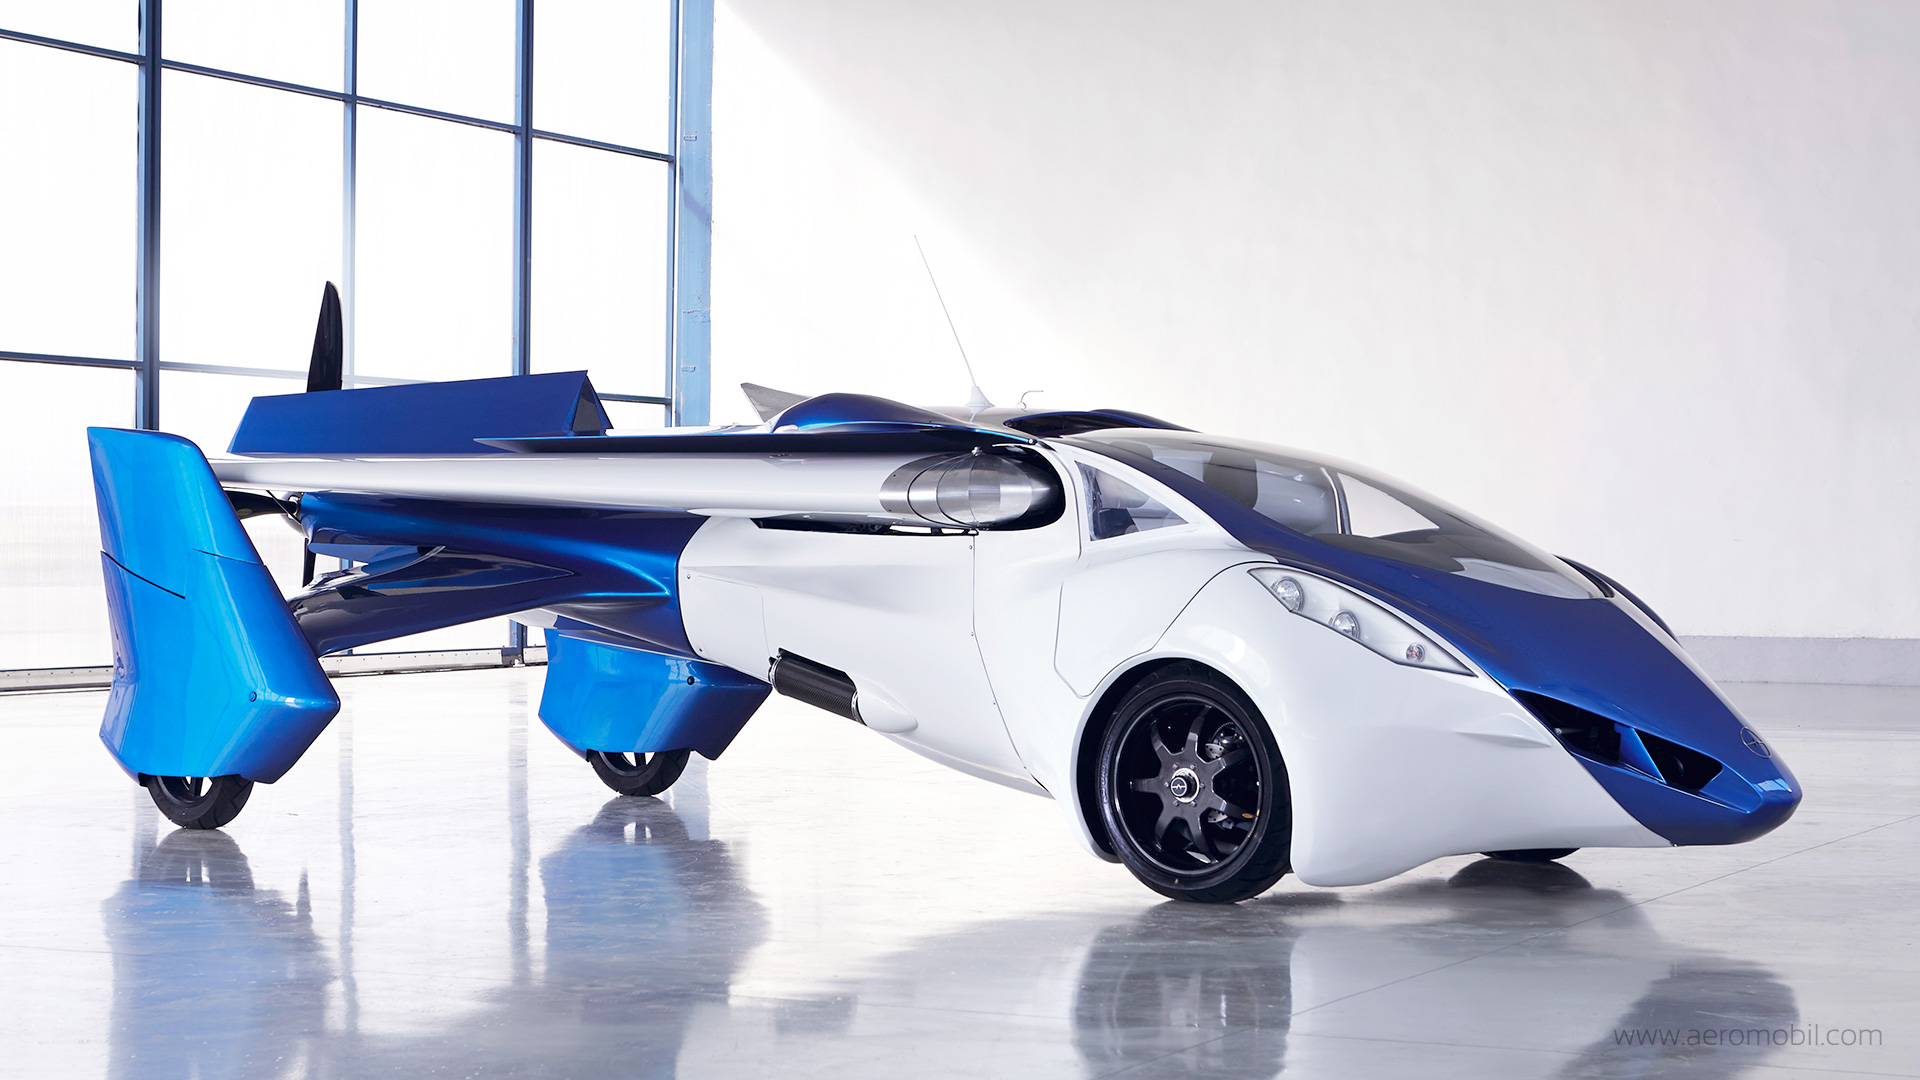 flying cars, future, futurism, 4th industrial revolution, disruption, business model, wasteless future, innovation, cars, automakers, markets, new economy